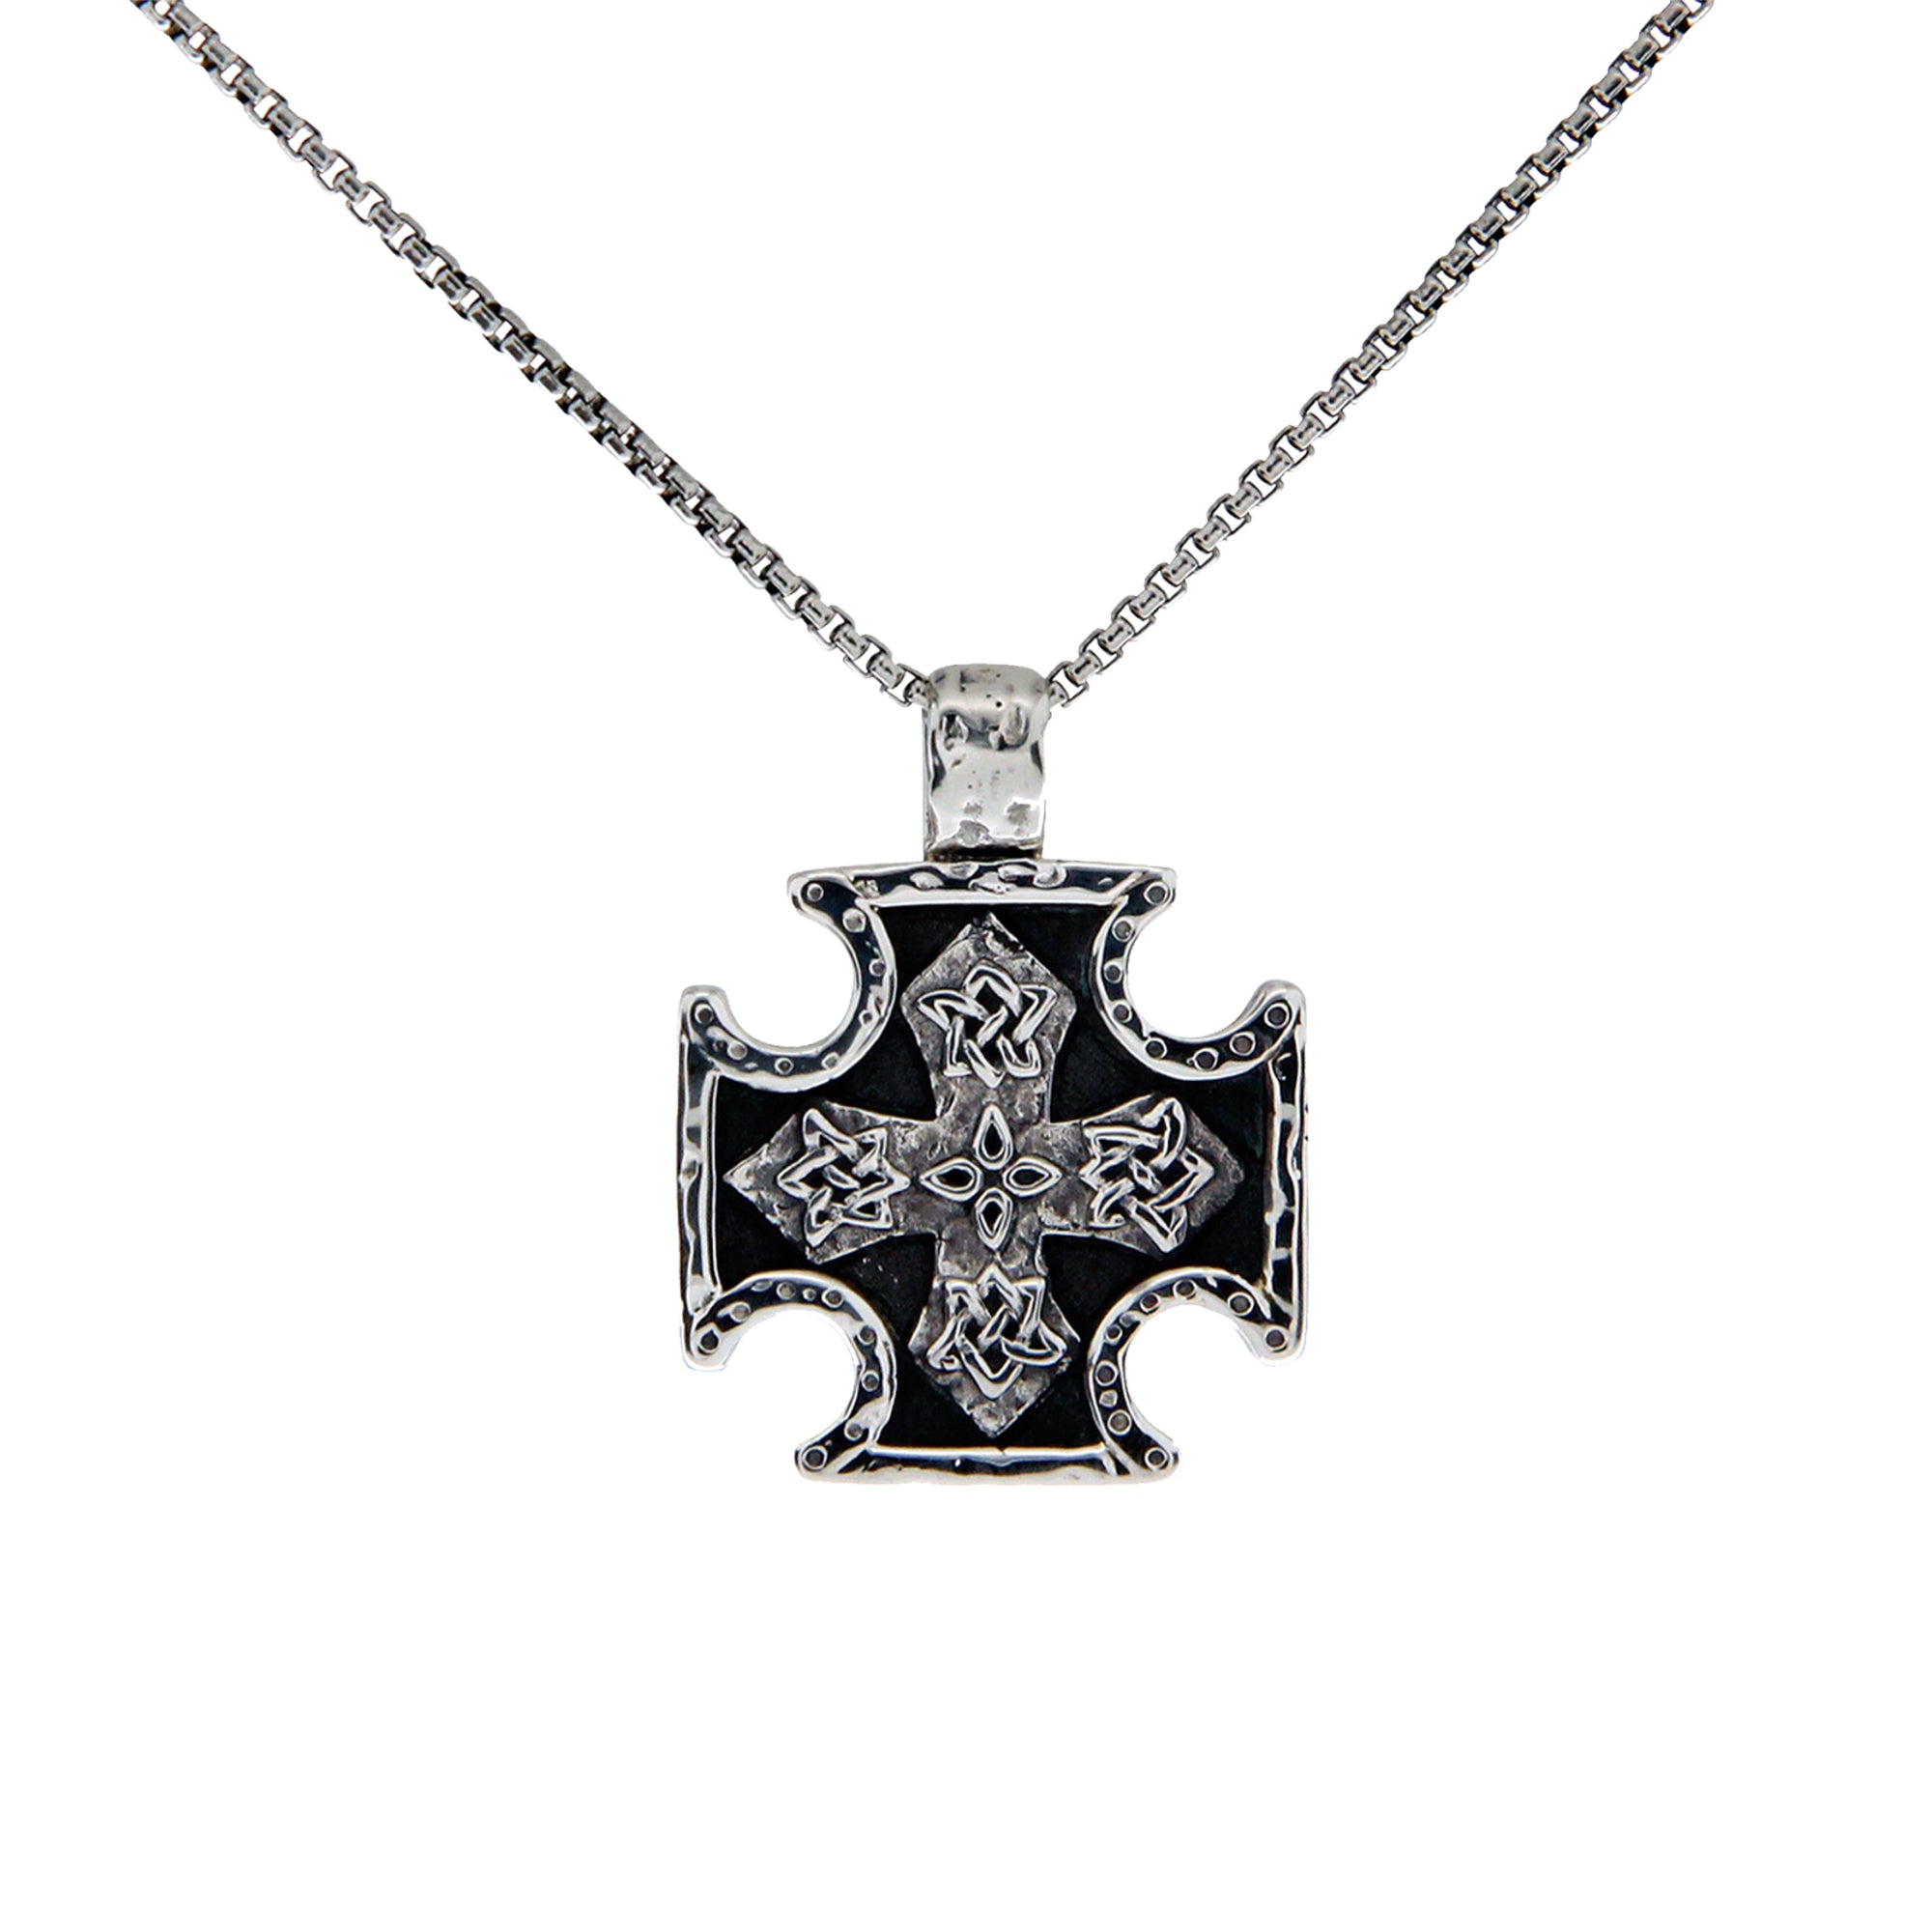 Sterling Silver Oxidized Biker Cross Medium Pendant